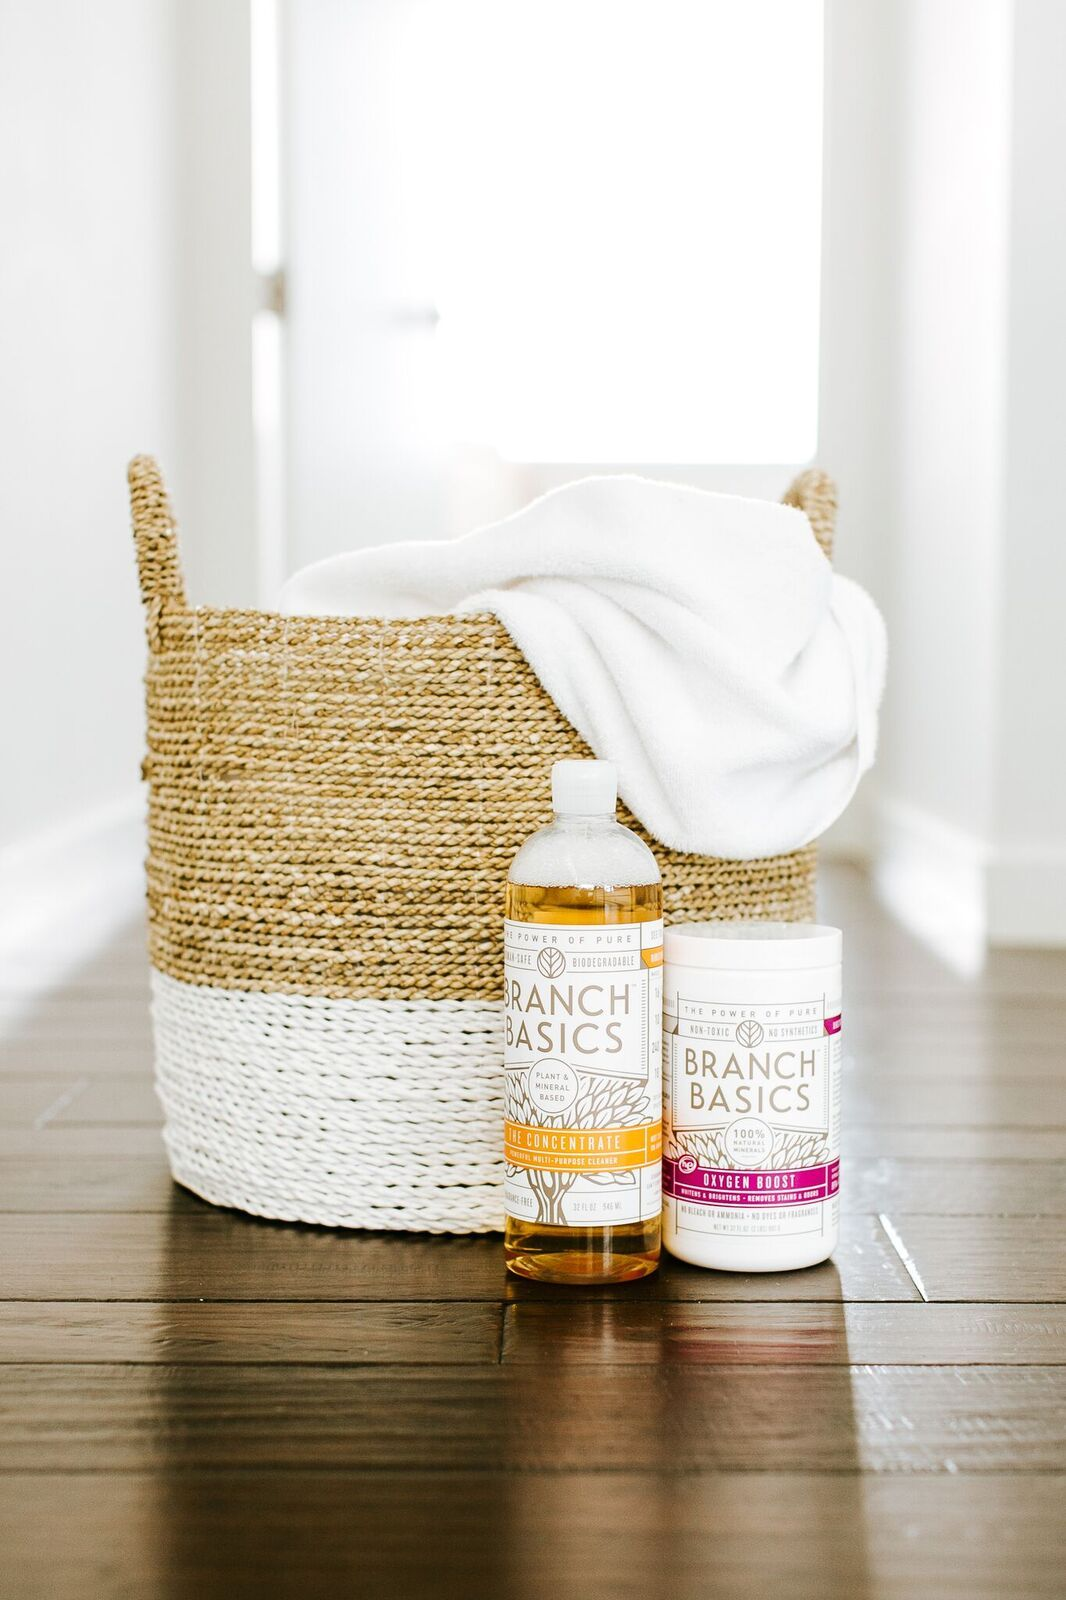 All Natural Non Toxic Laundry Supplies Powerofpure Laundry Laundry Supplies Branch Basics